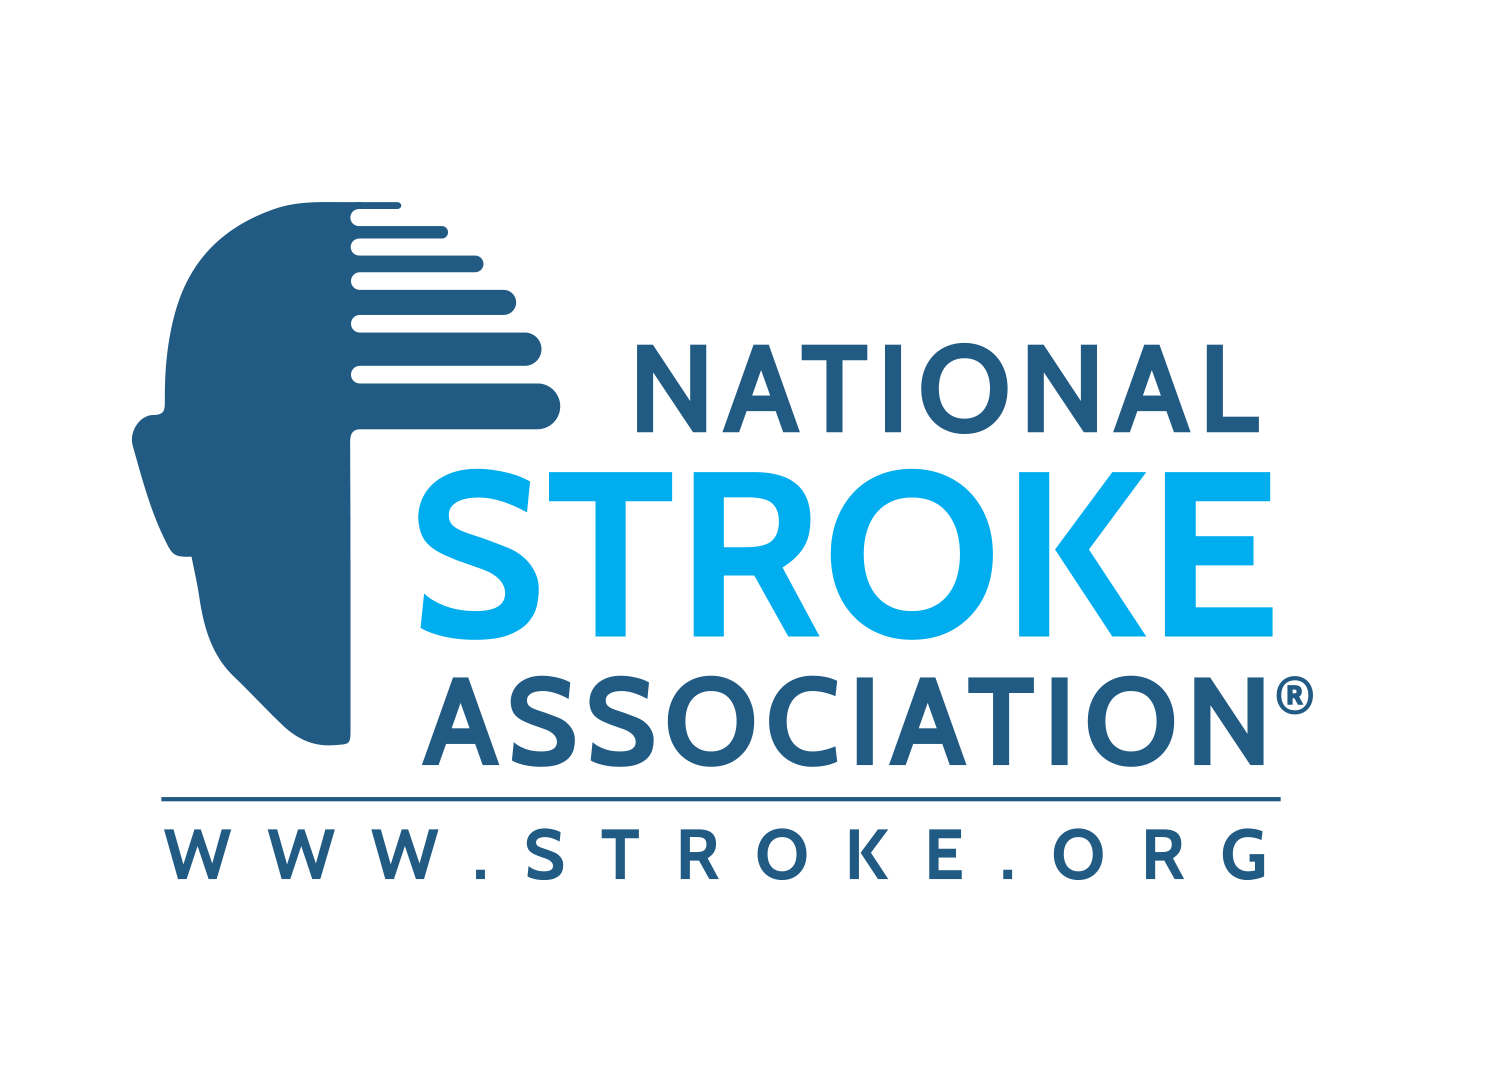 The National Stroke Association